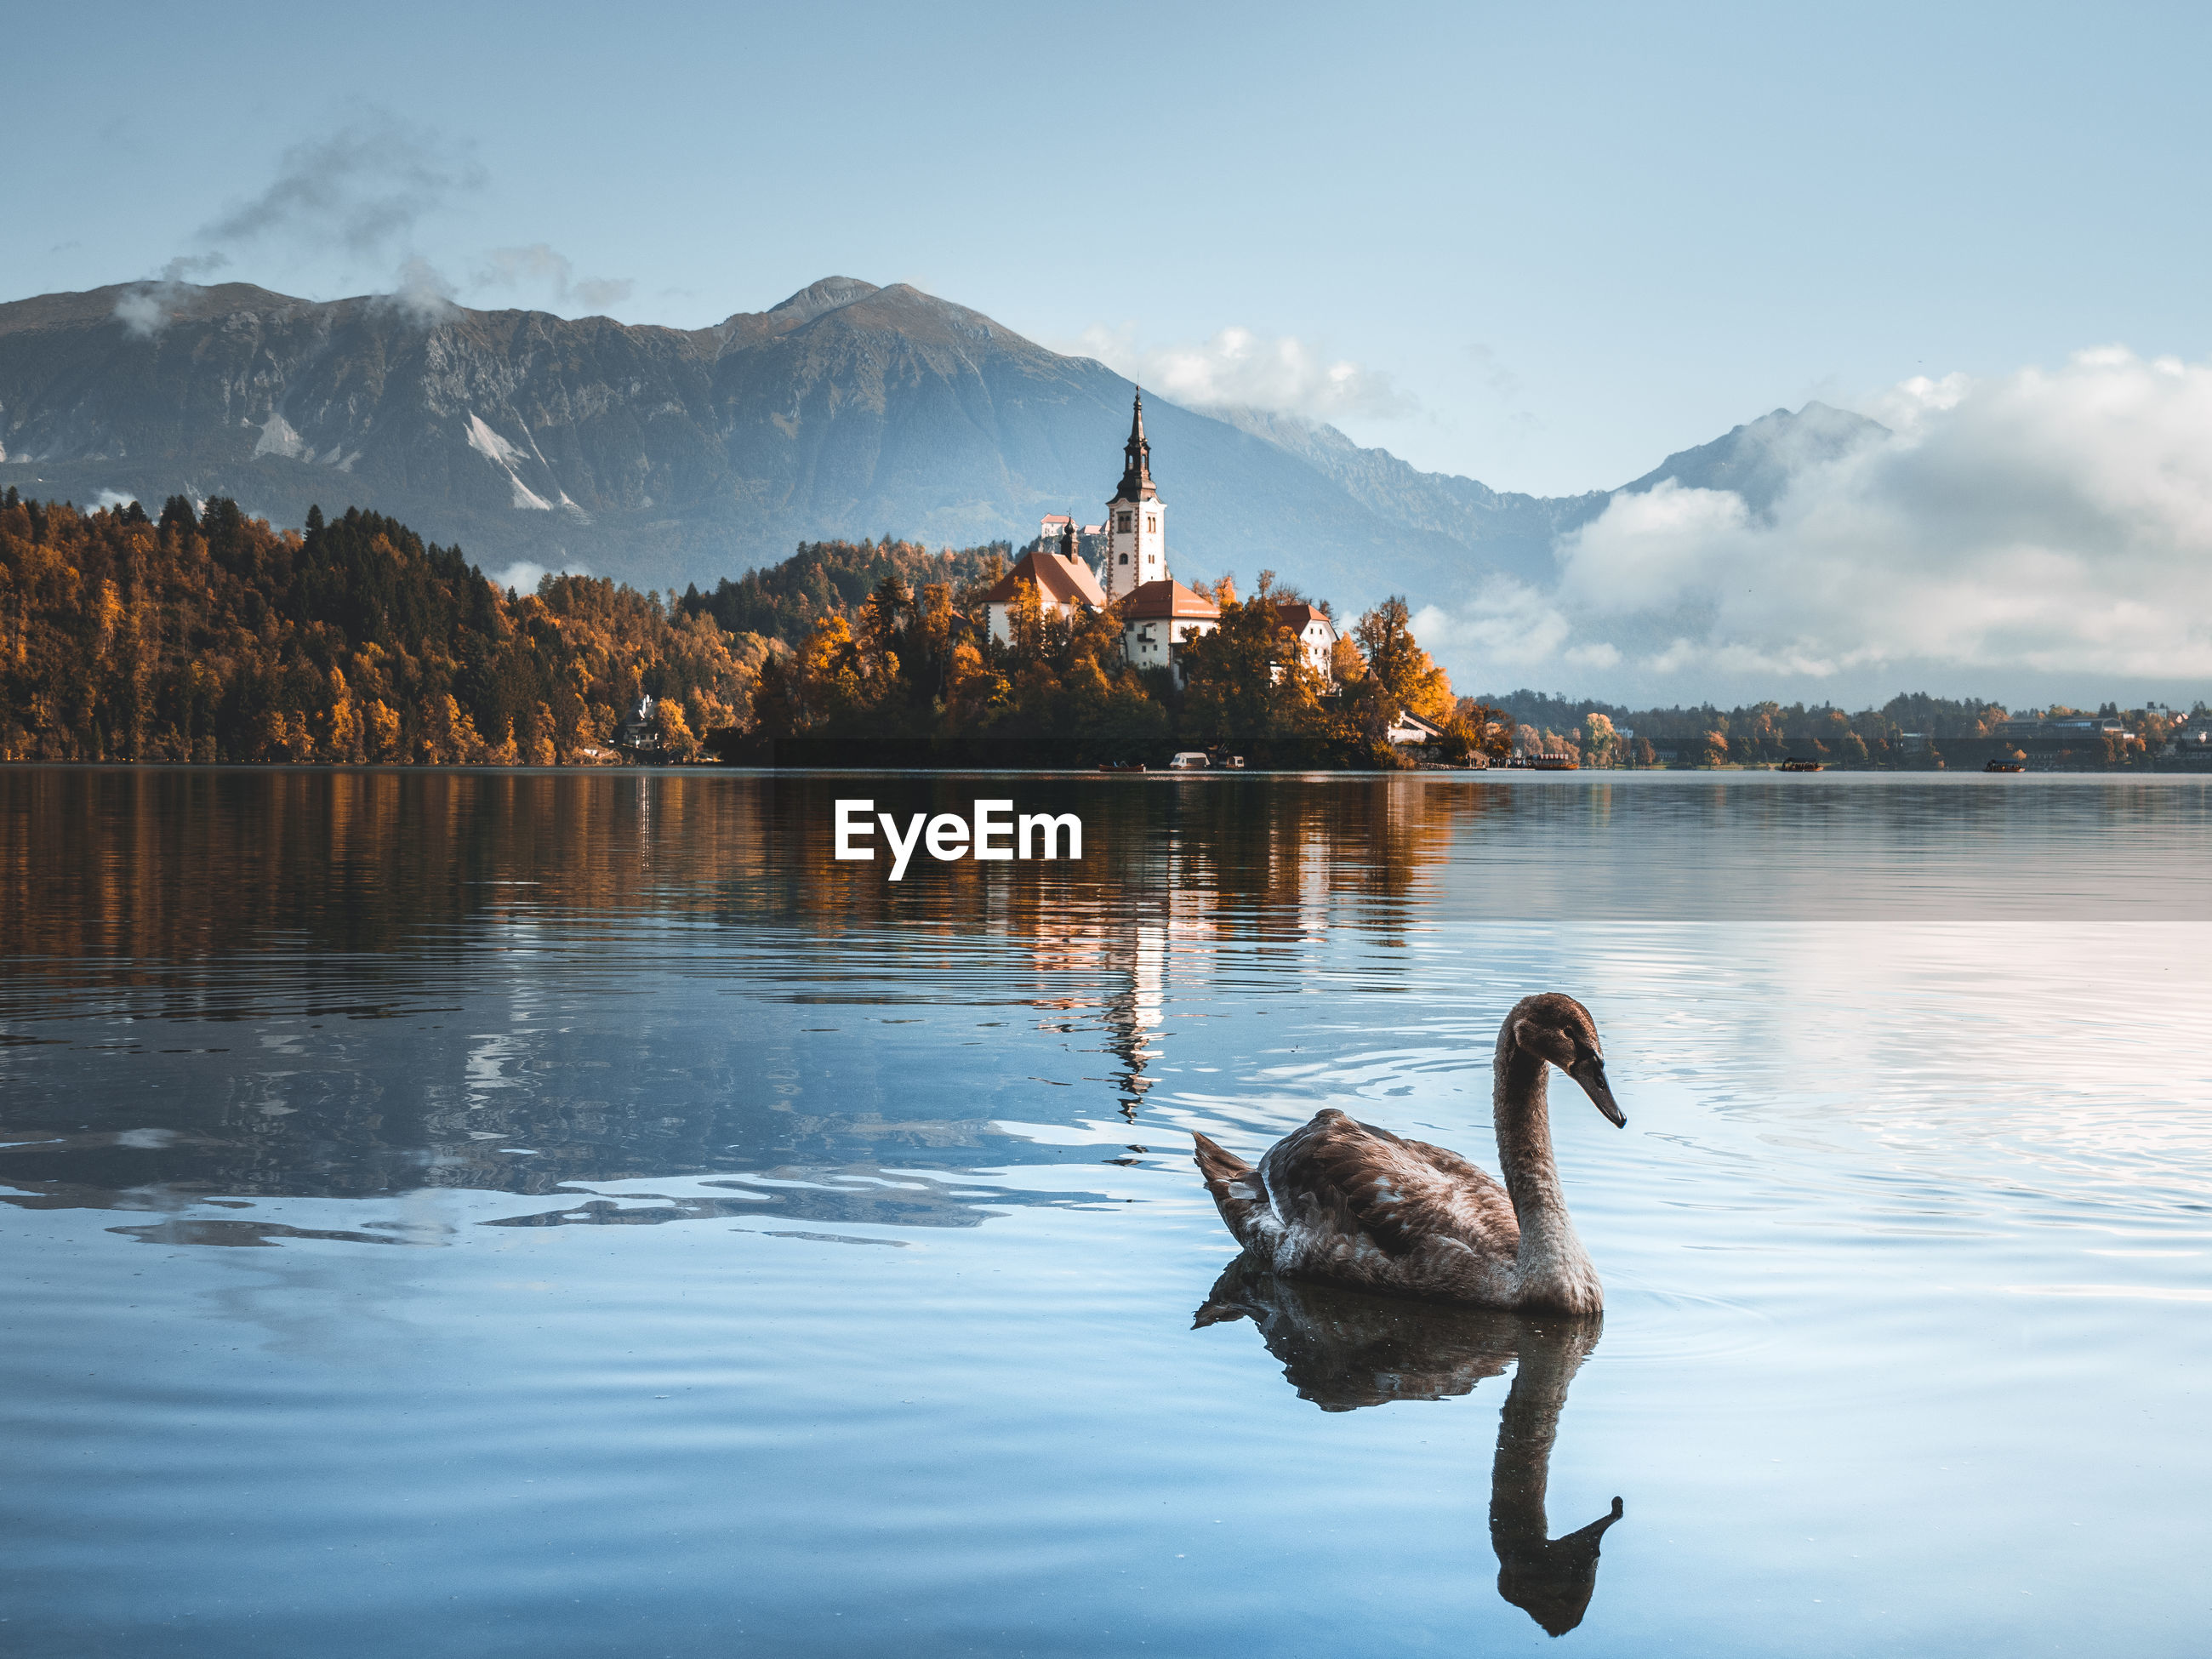 Swans swimming in lake against mountain range with bled church and mountains in background